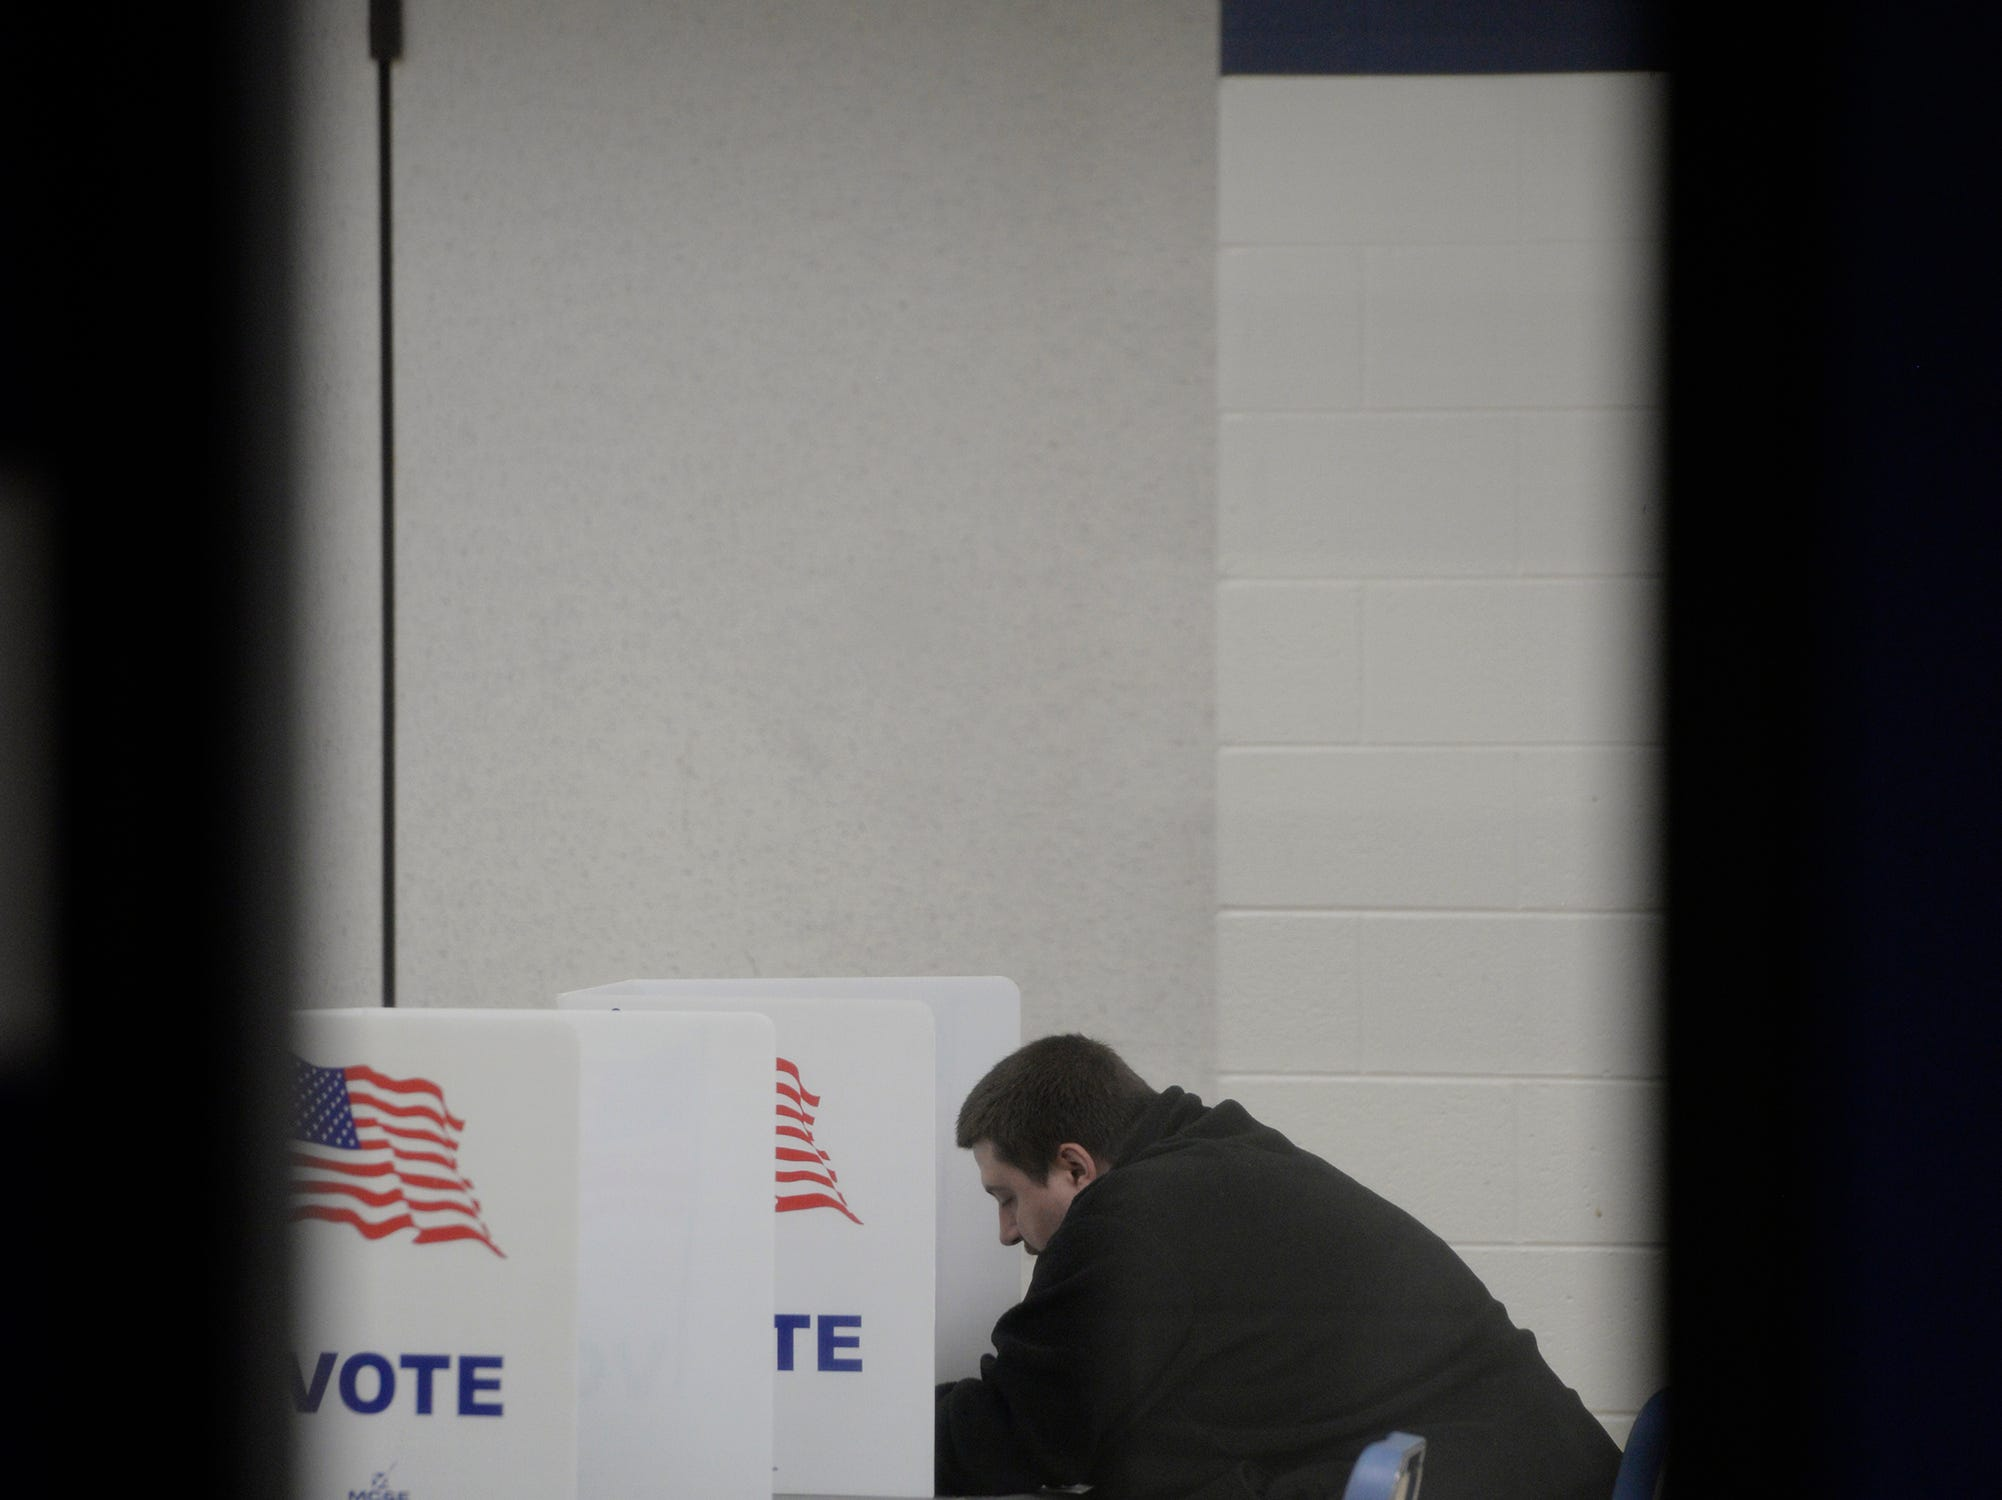 Carl Daisy II fills out his ballot at farmington High School on election day Nov. 6, 2018.